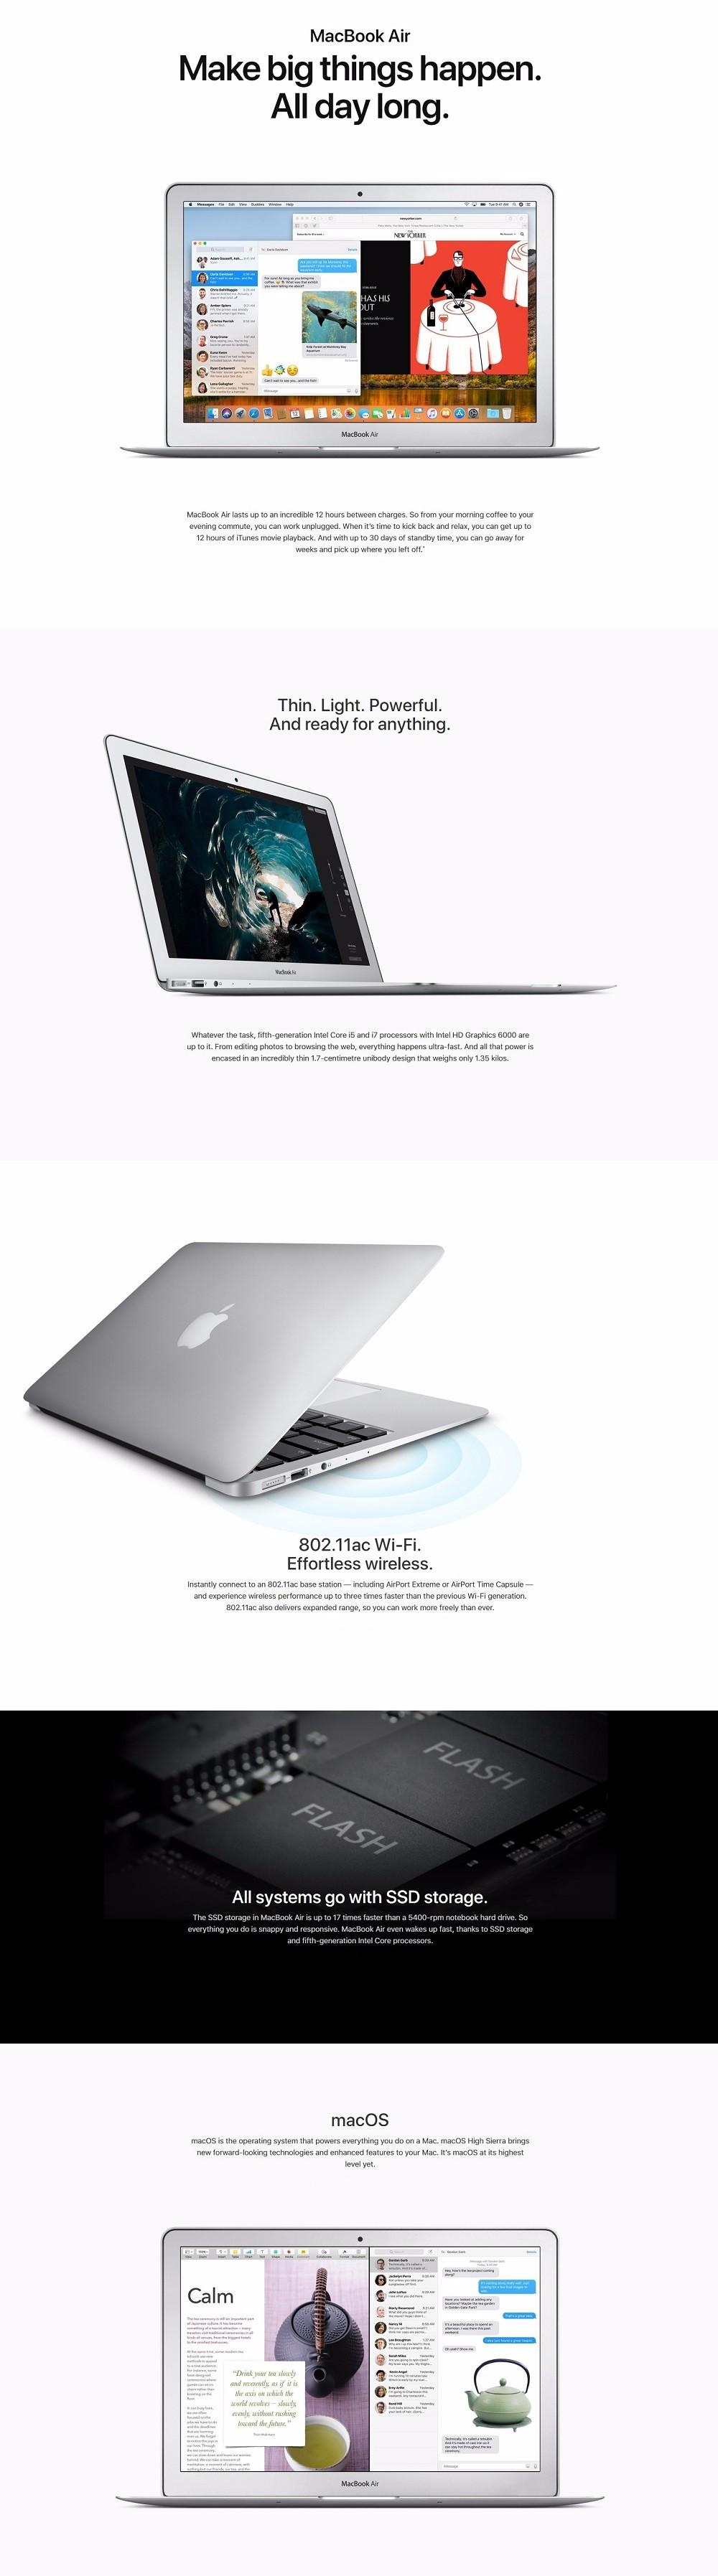 Macbook Air-1.jpg